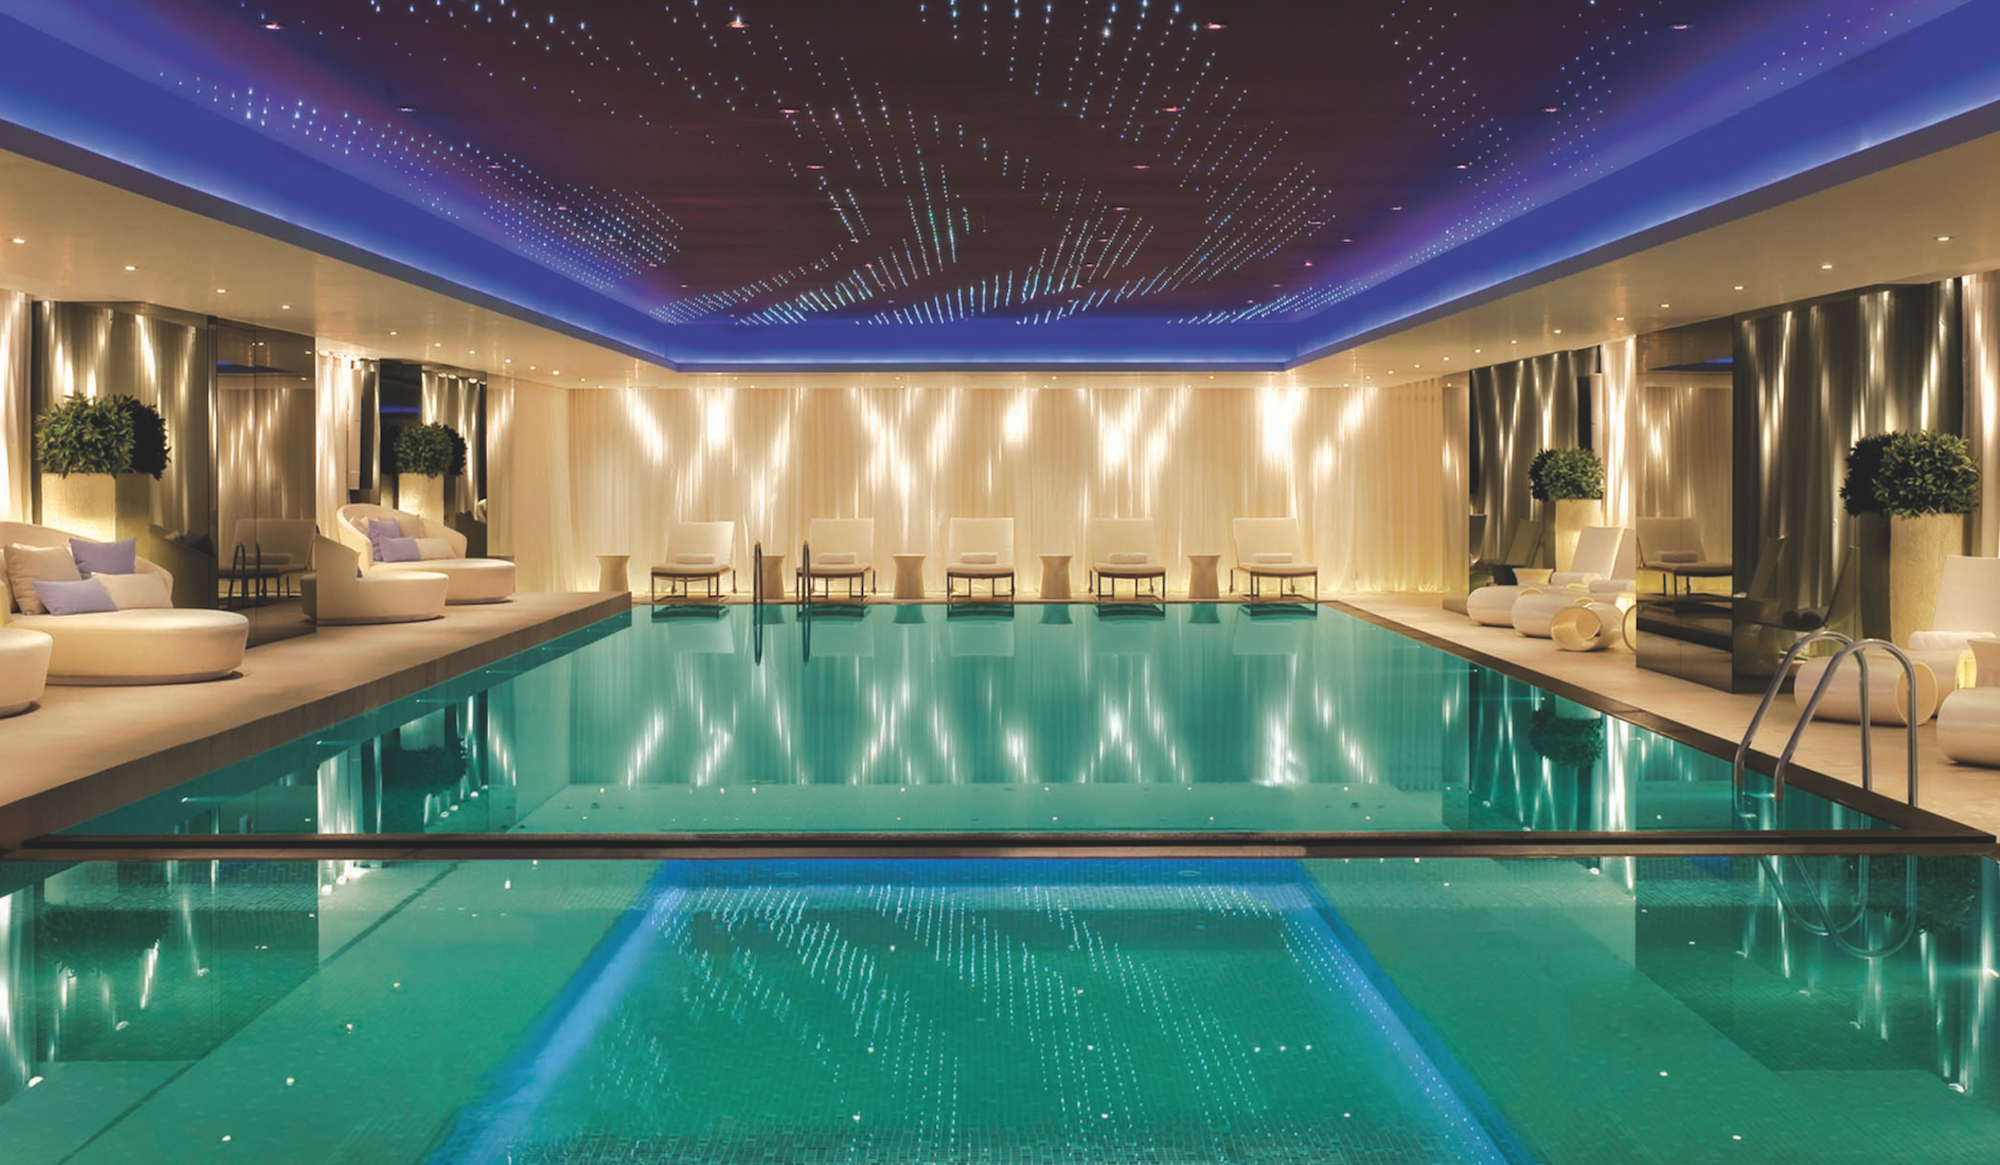 The Mira Hotel Hong Kong Spa